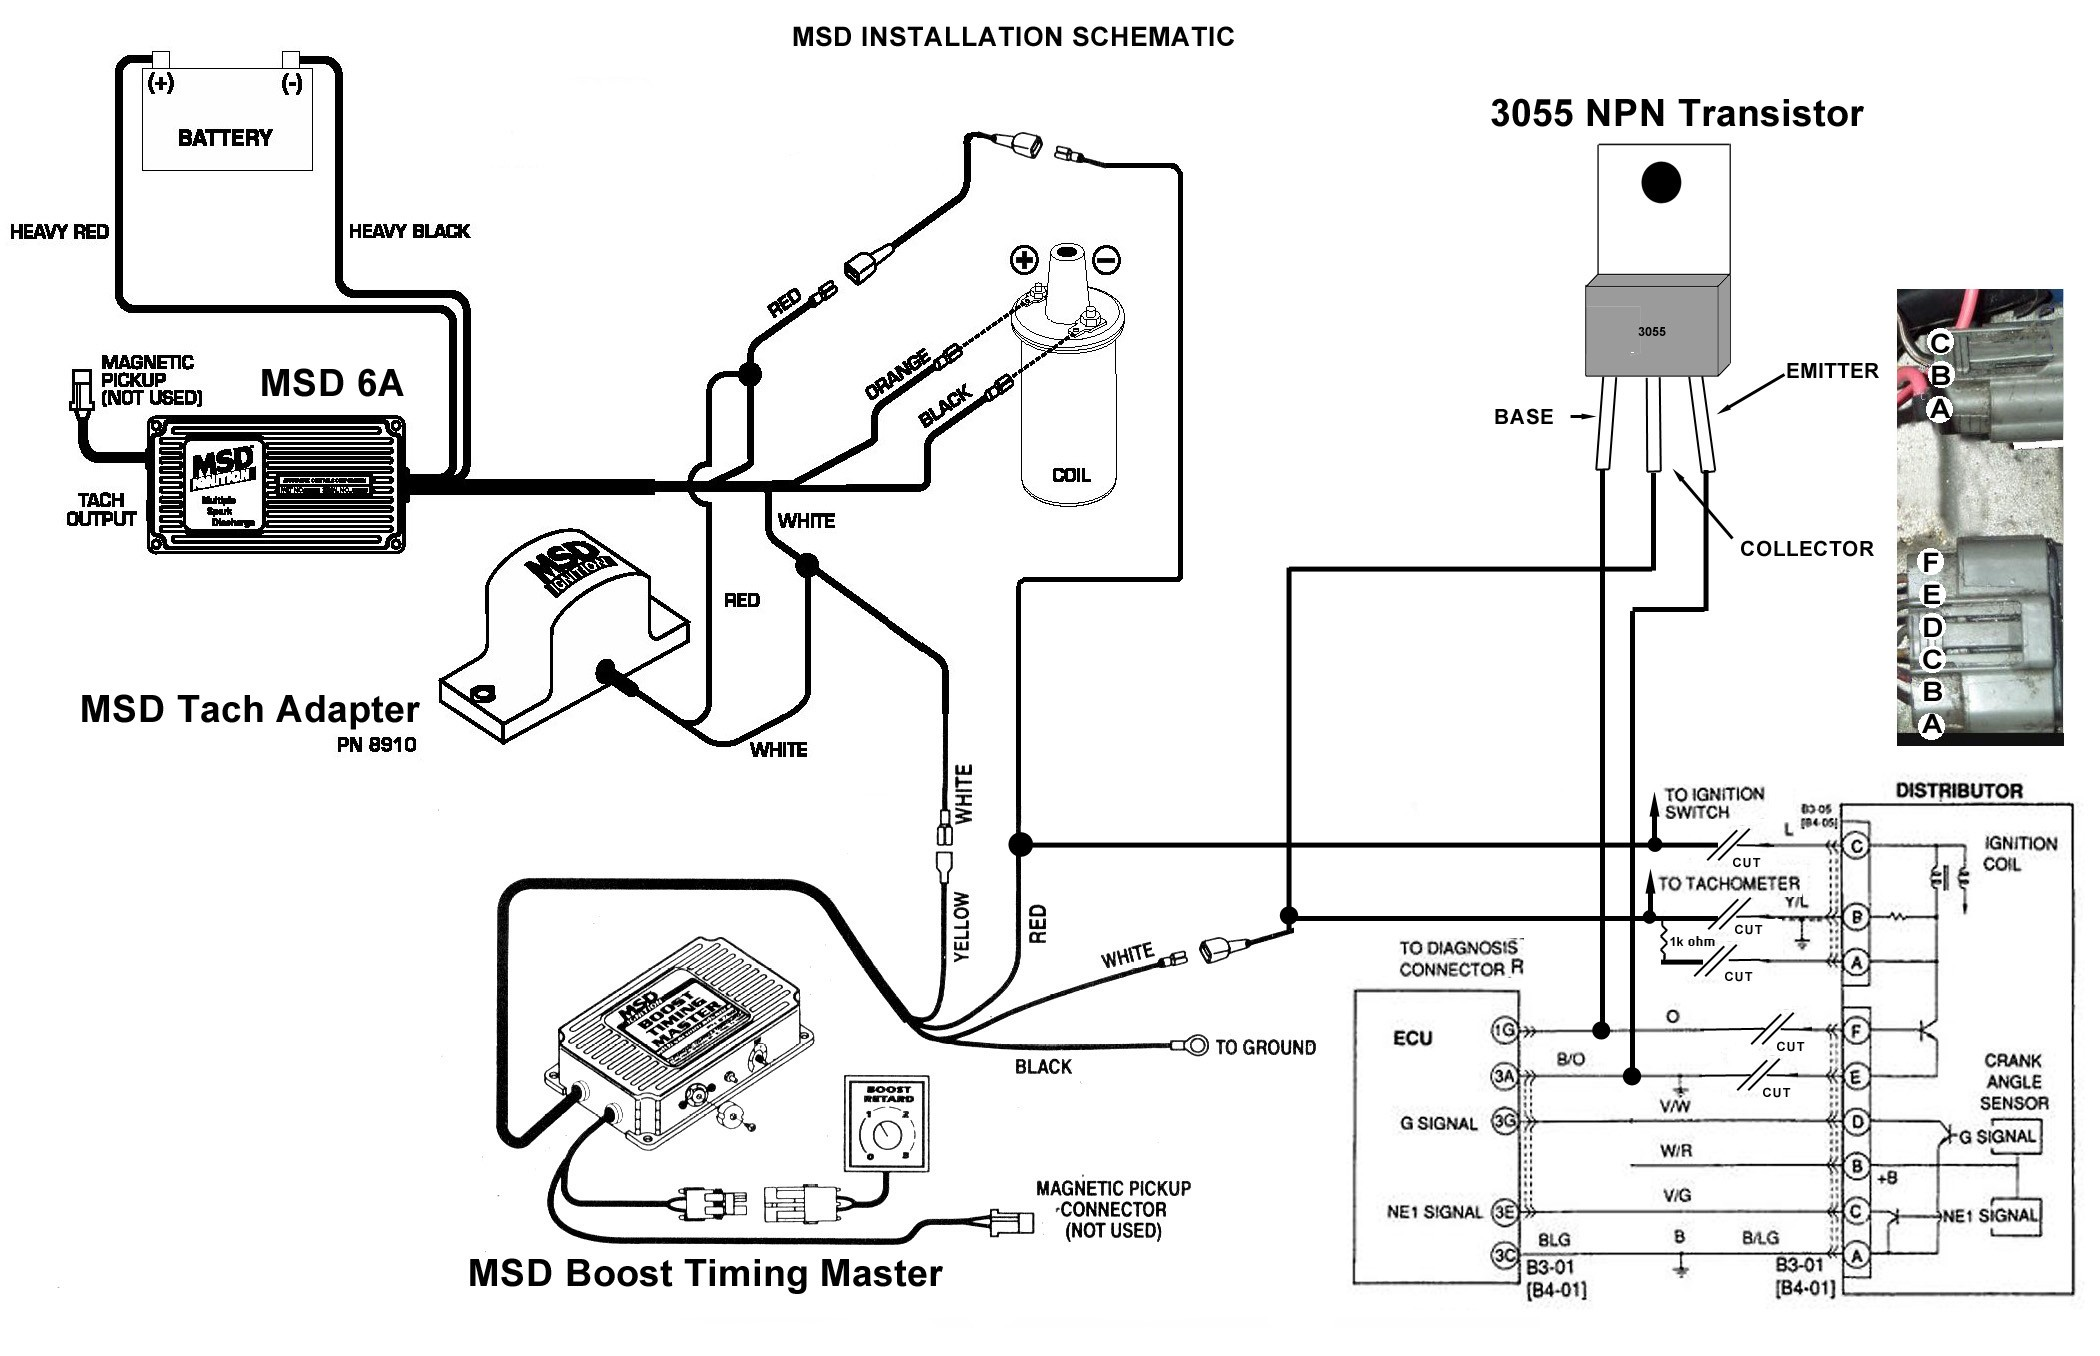 Wiring Diagram Furthermore 1989 Pontiac Trans Am Wiring Diagram